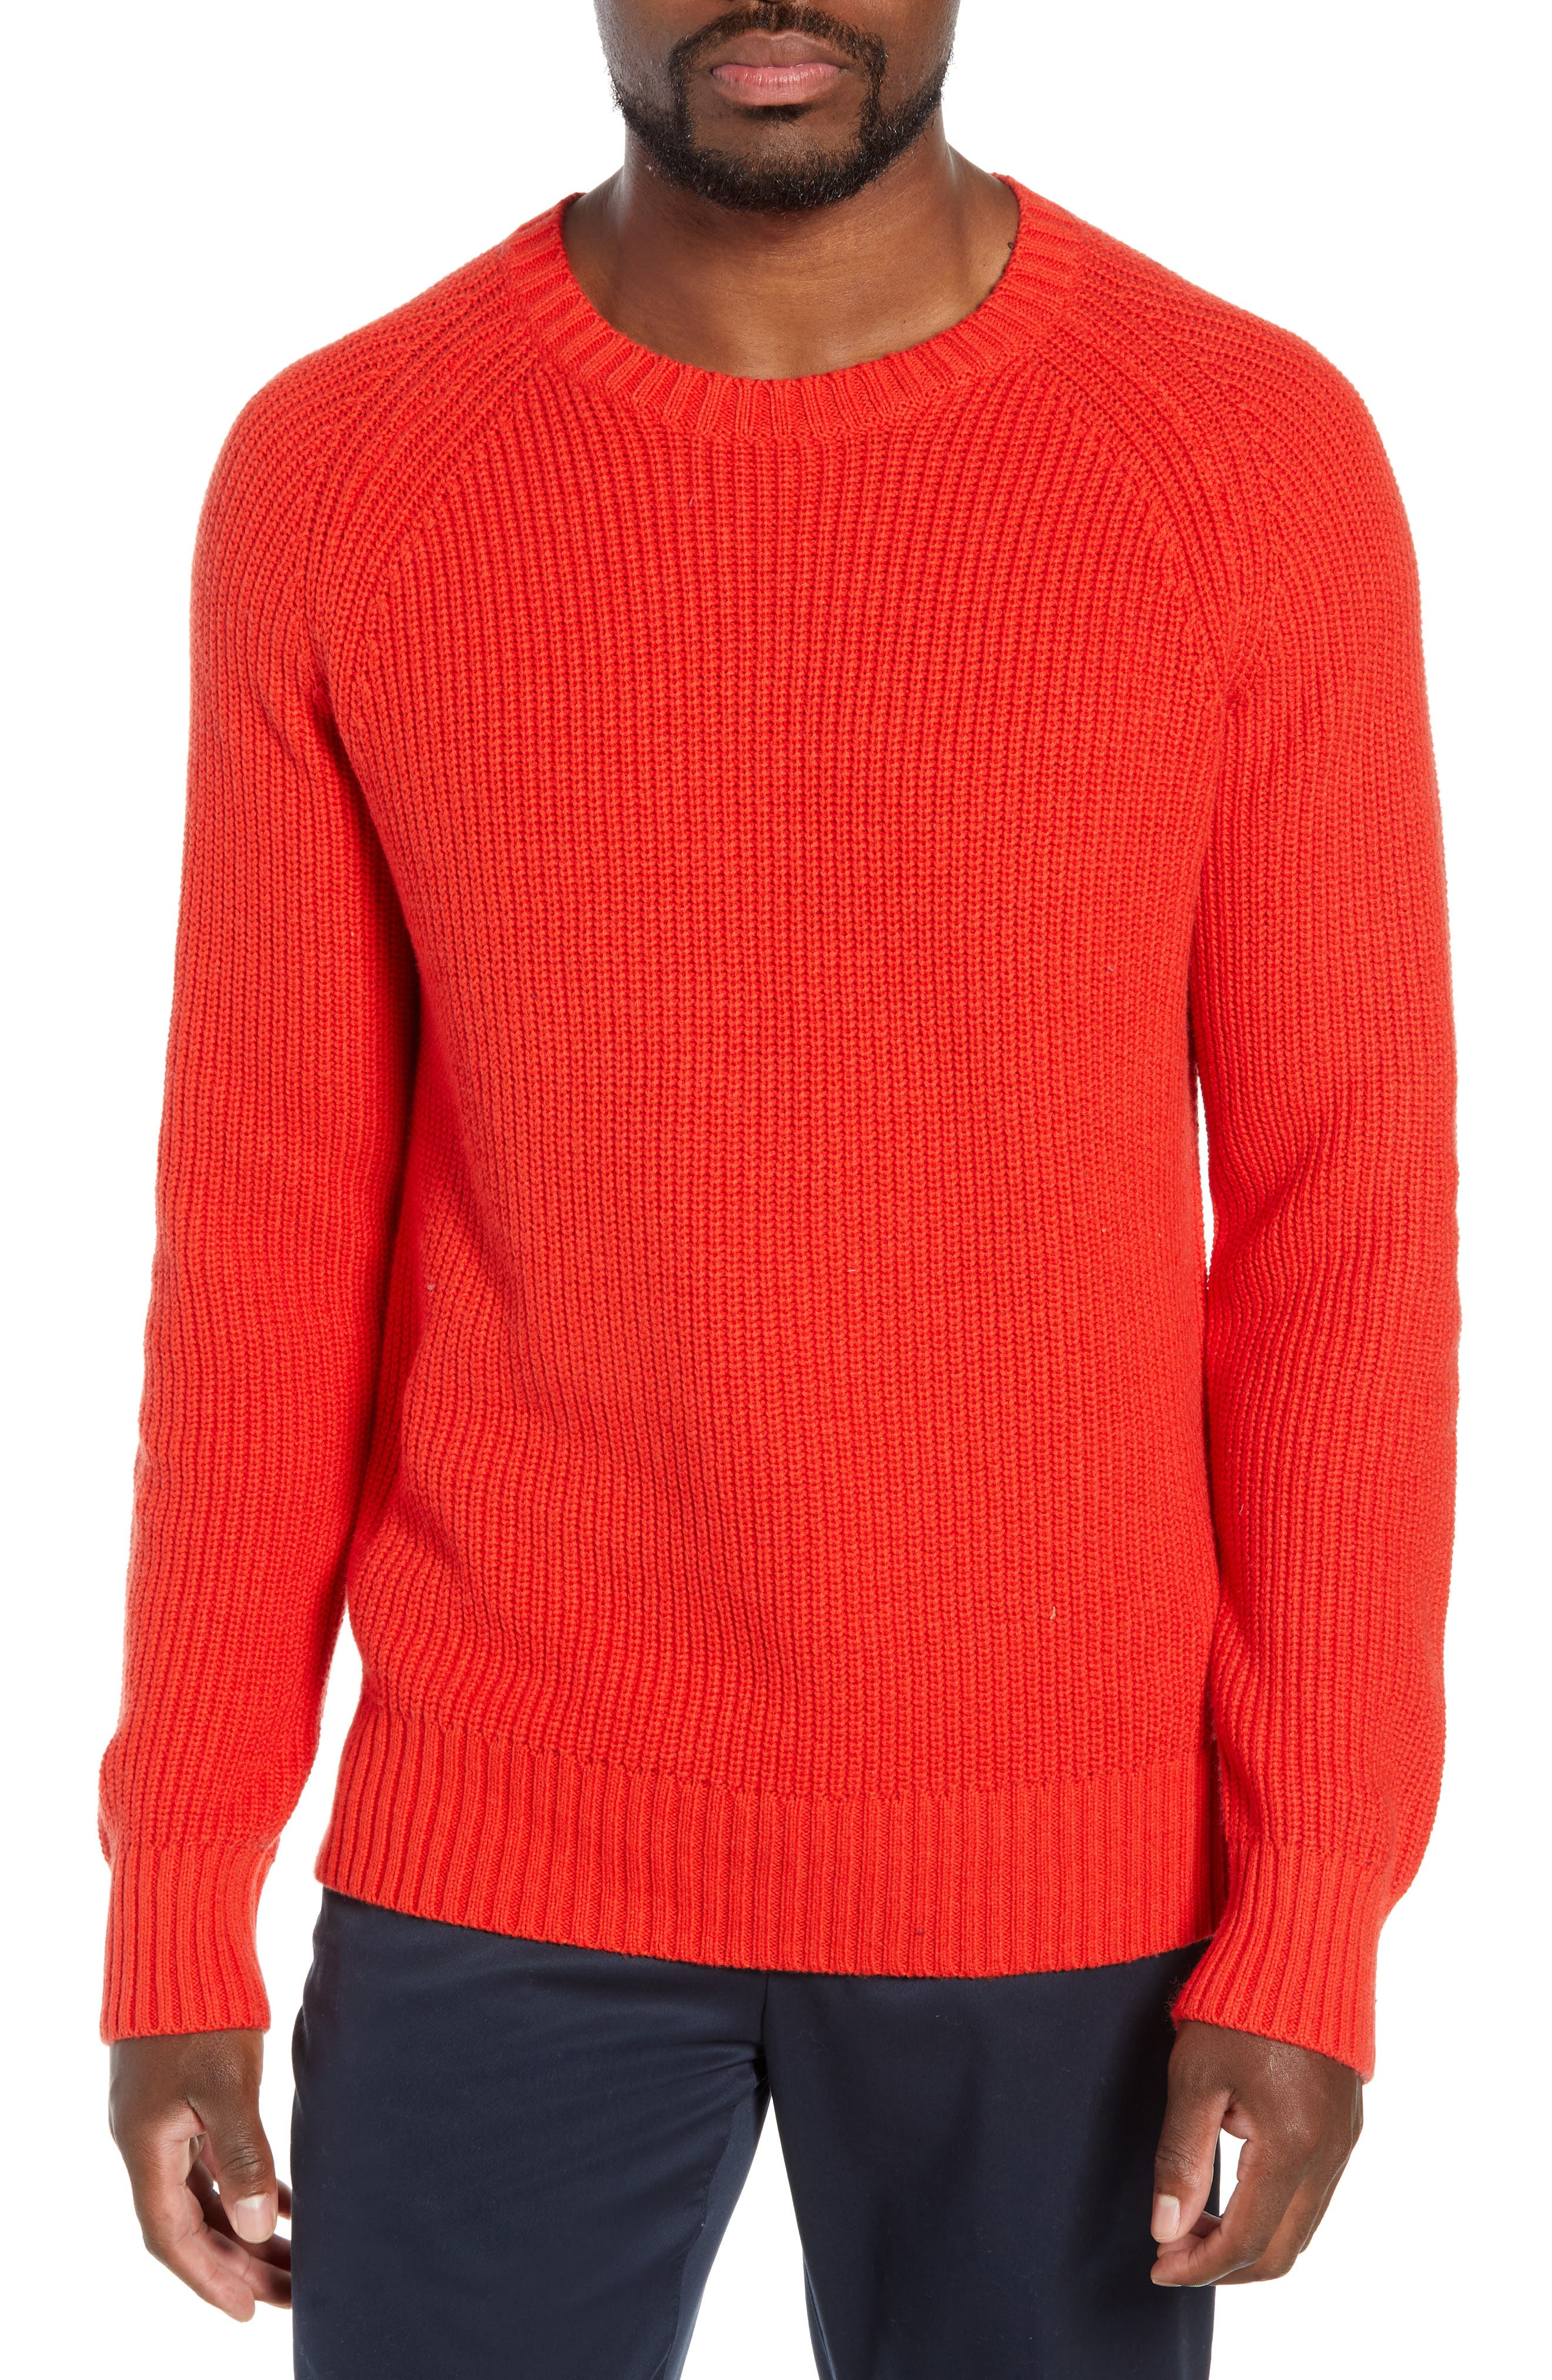 BONOBOS Slim Fit Cotton & Cashmere Sweater in Volcanic